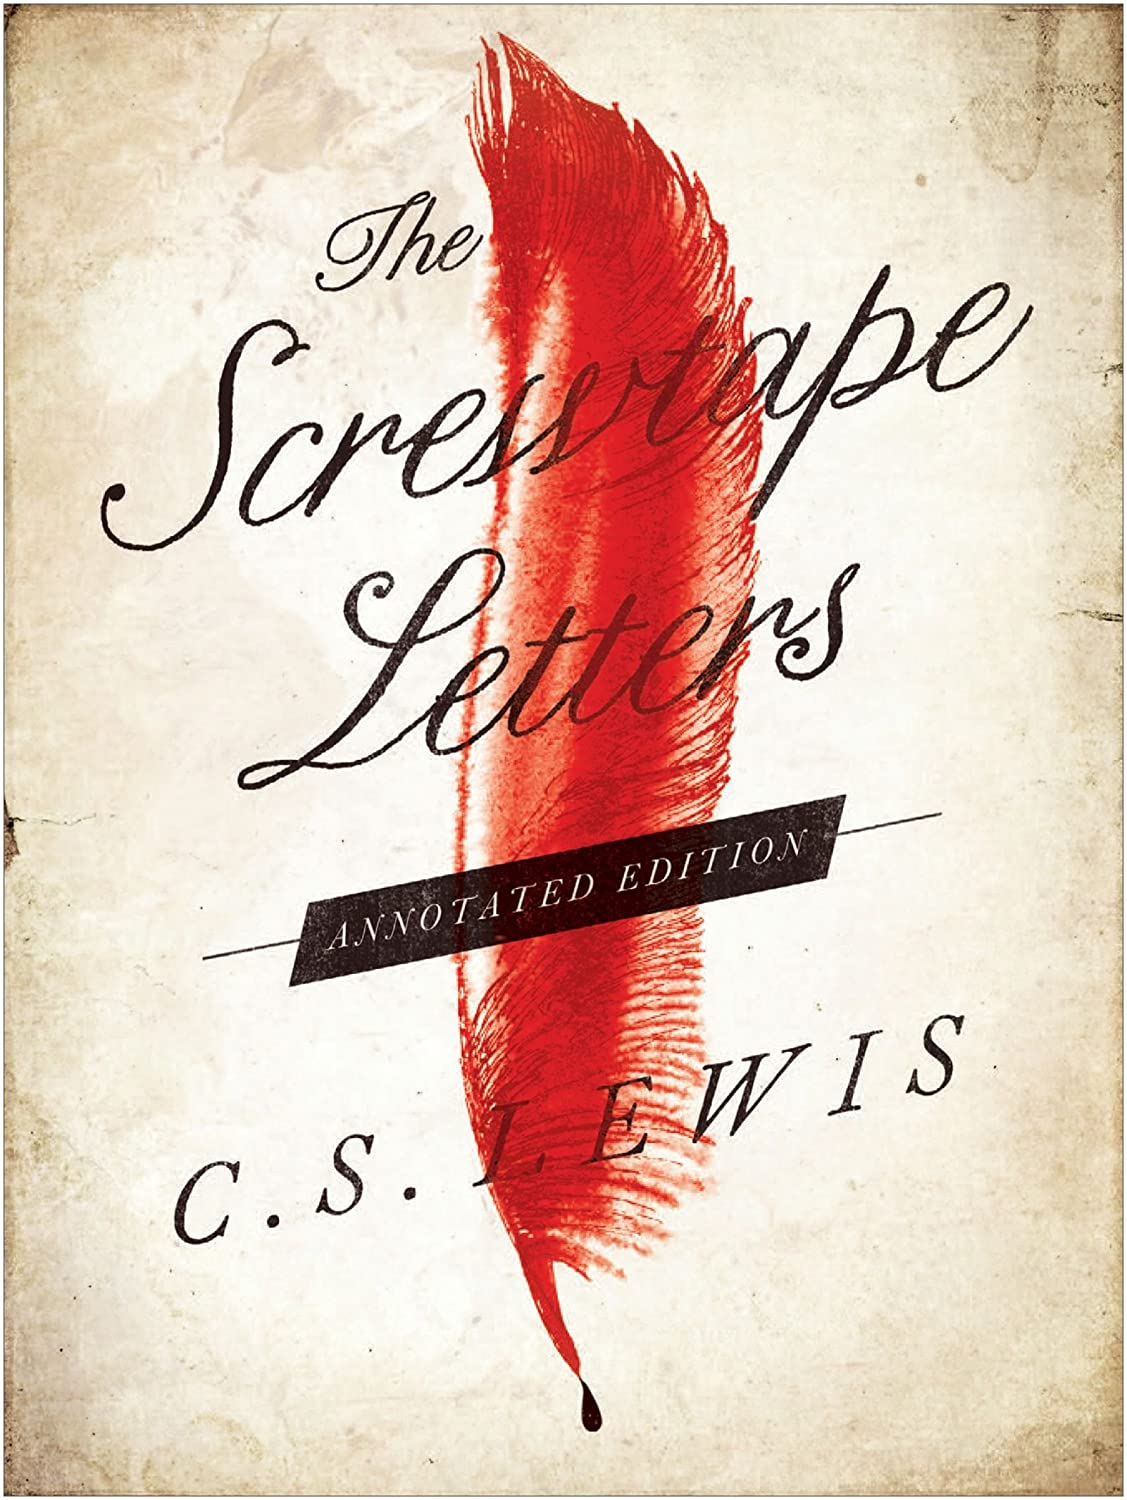 an analysis of the book the screwtape letters and the english patient The screwtape letters is a fiction book comprised of thirty-one letters from screwtape, a senior tempter and head in wormwood is quite troubled when it comes to tempting his patient nevertheless, he need not fear because faithful uncle screwtape has offered his services.